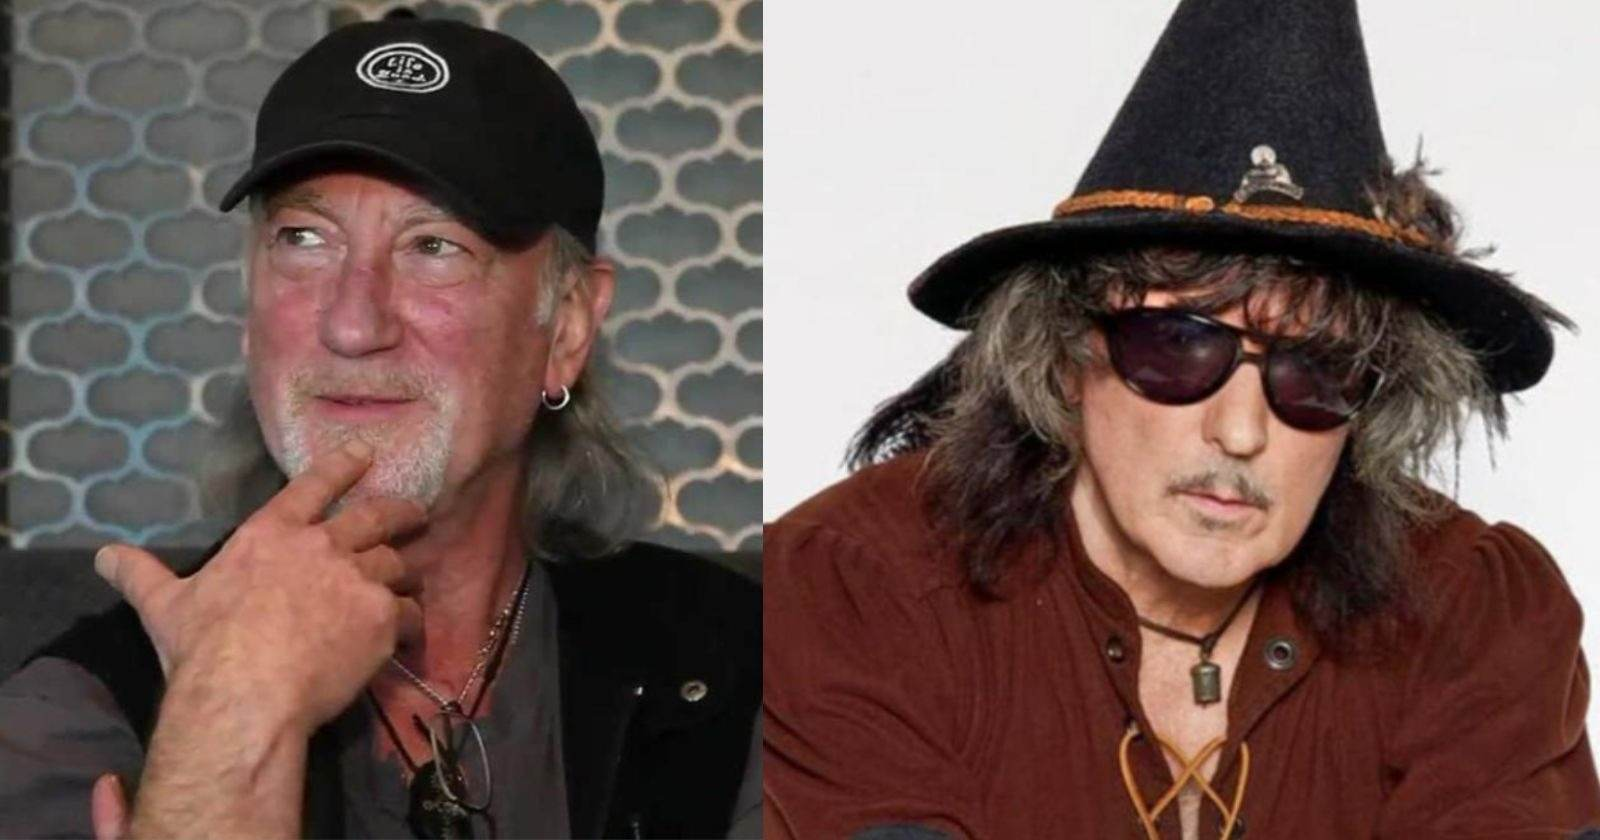 Roger Glover Ritchie Blackmore